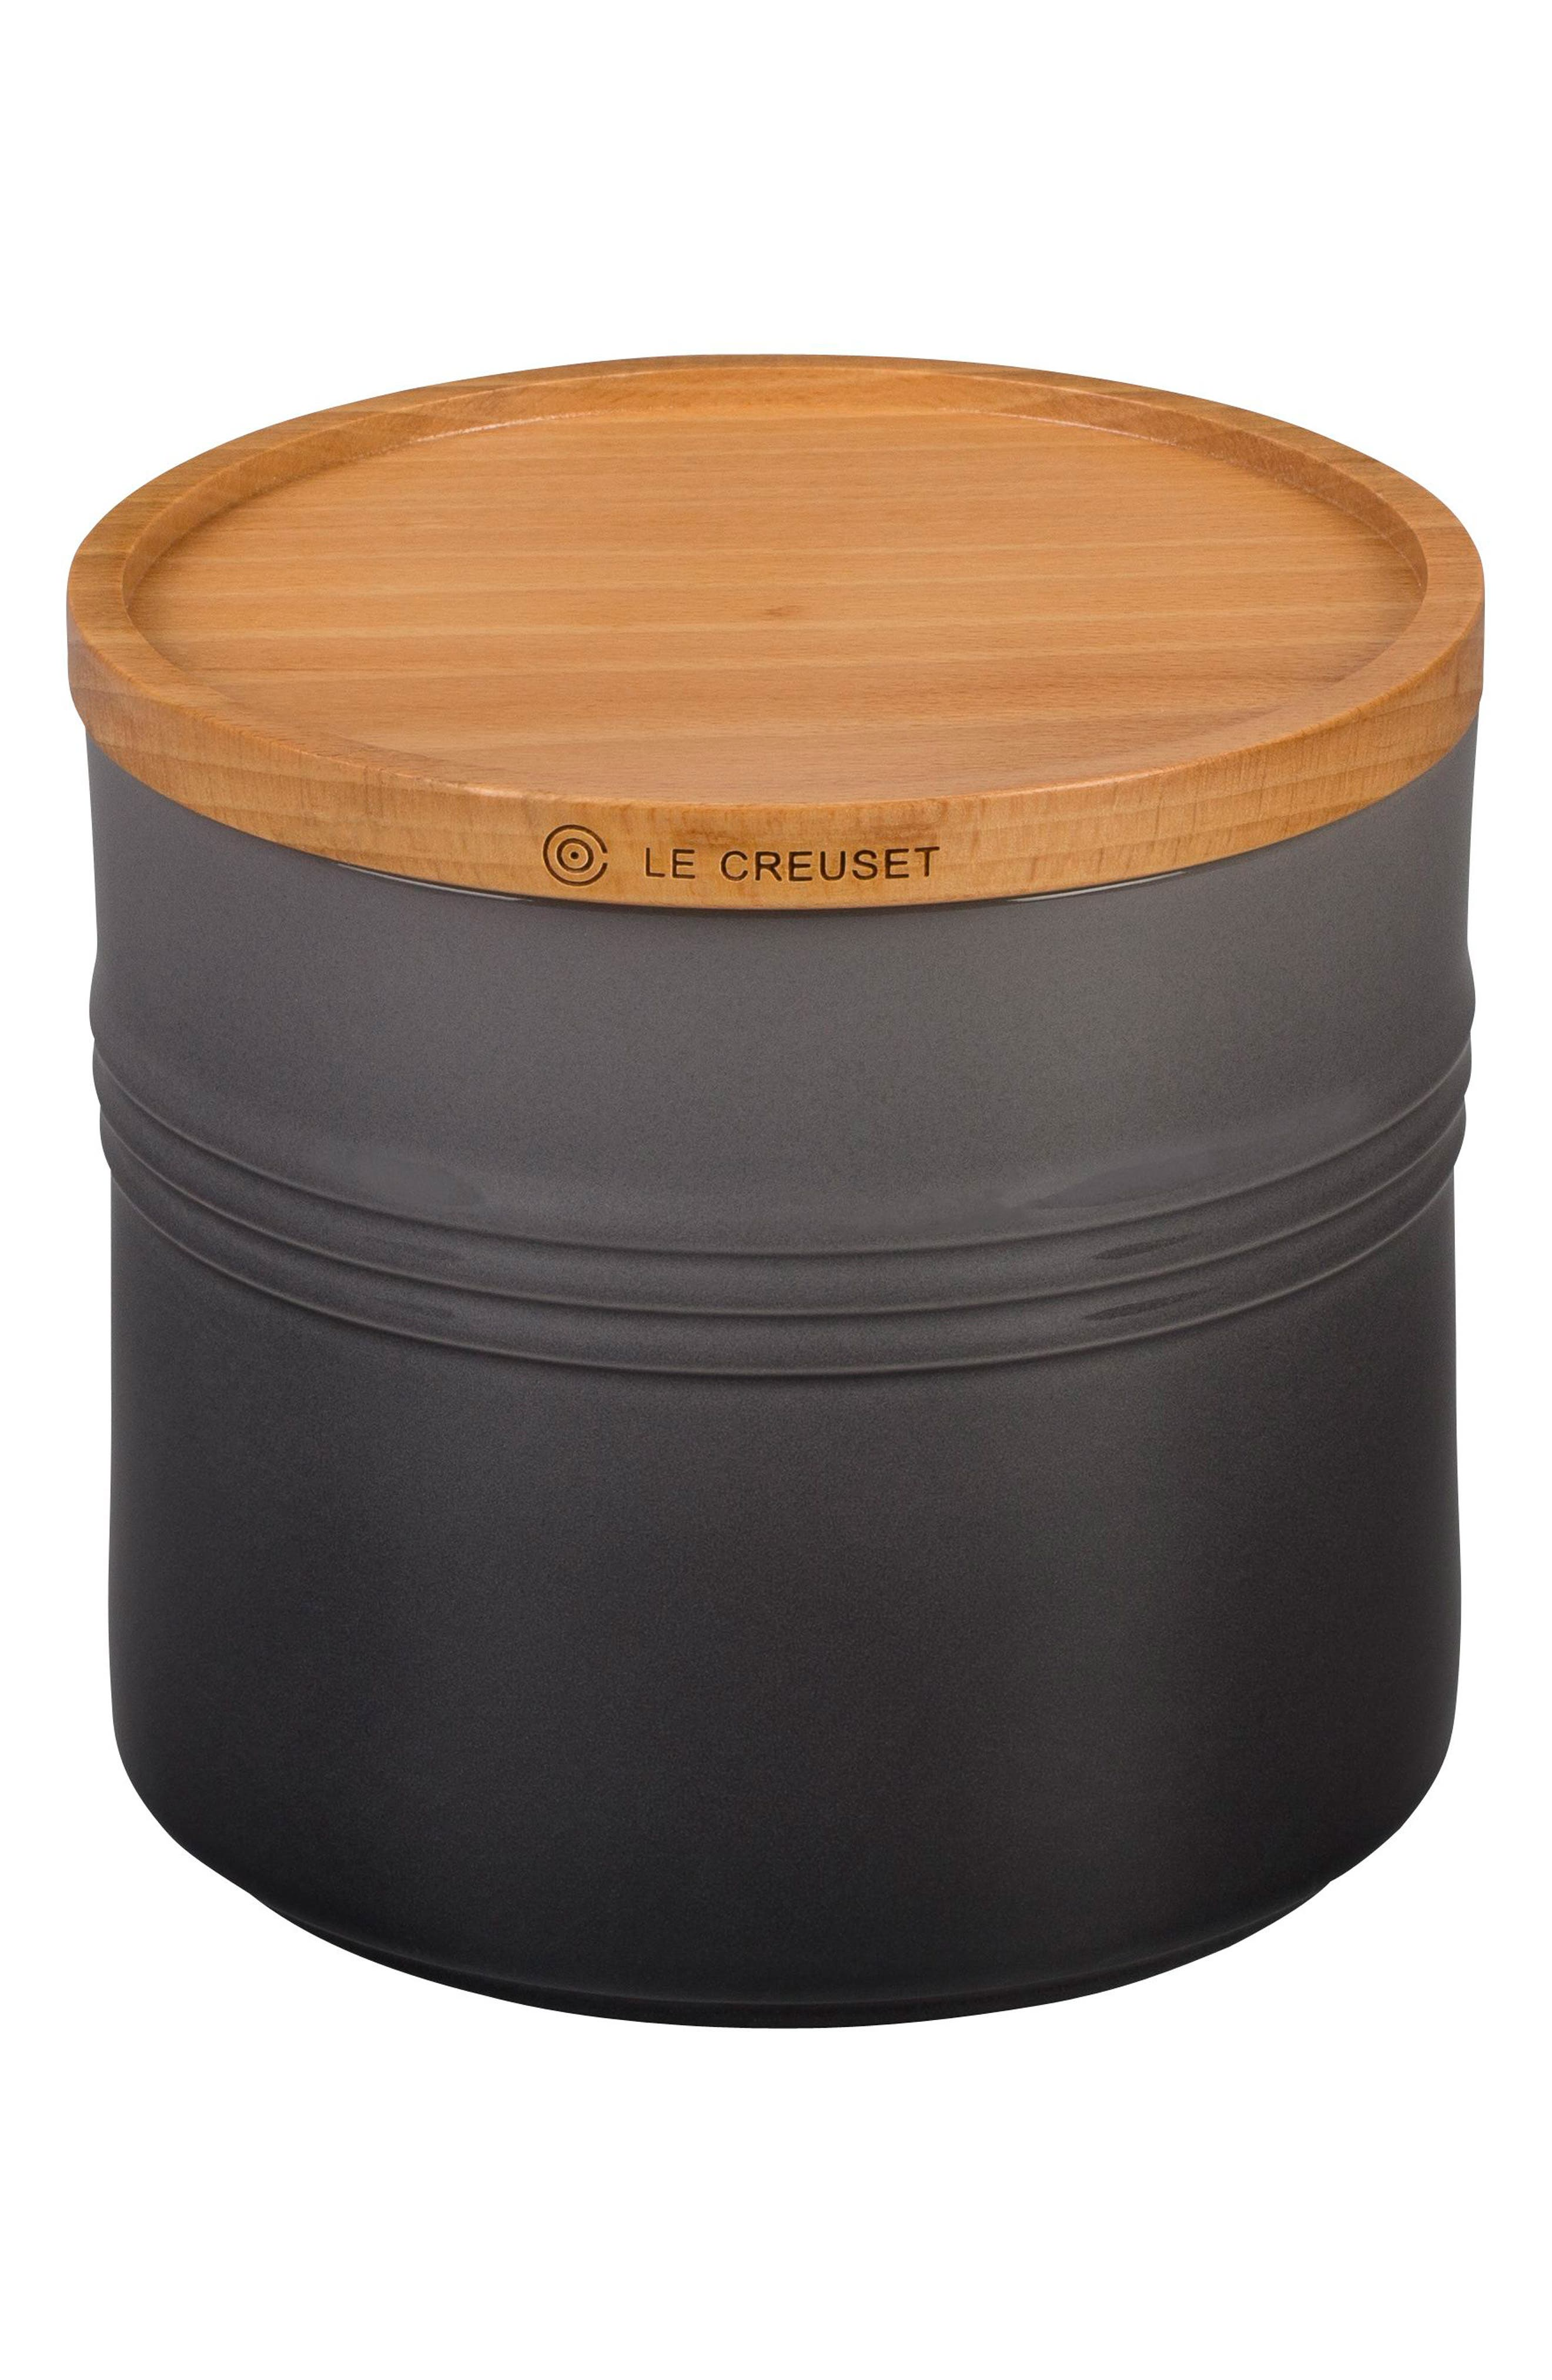 Glazed Stoneware 1 1/2 Quart Storage Canister with Wooden Lid, Main, color, OYSTER